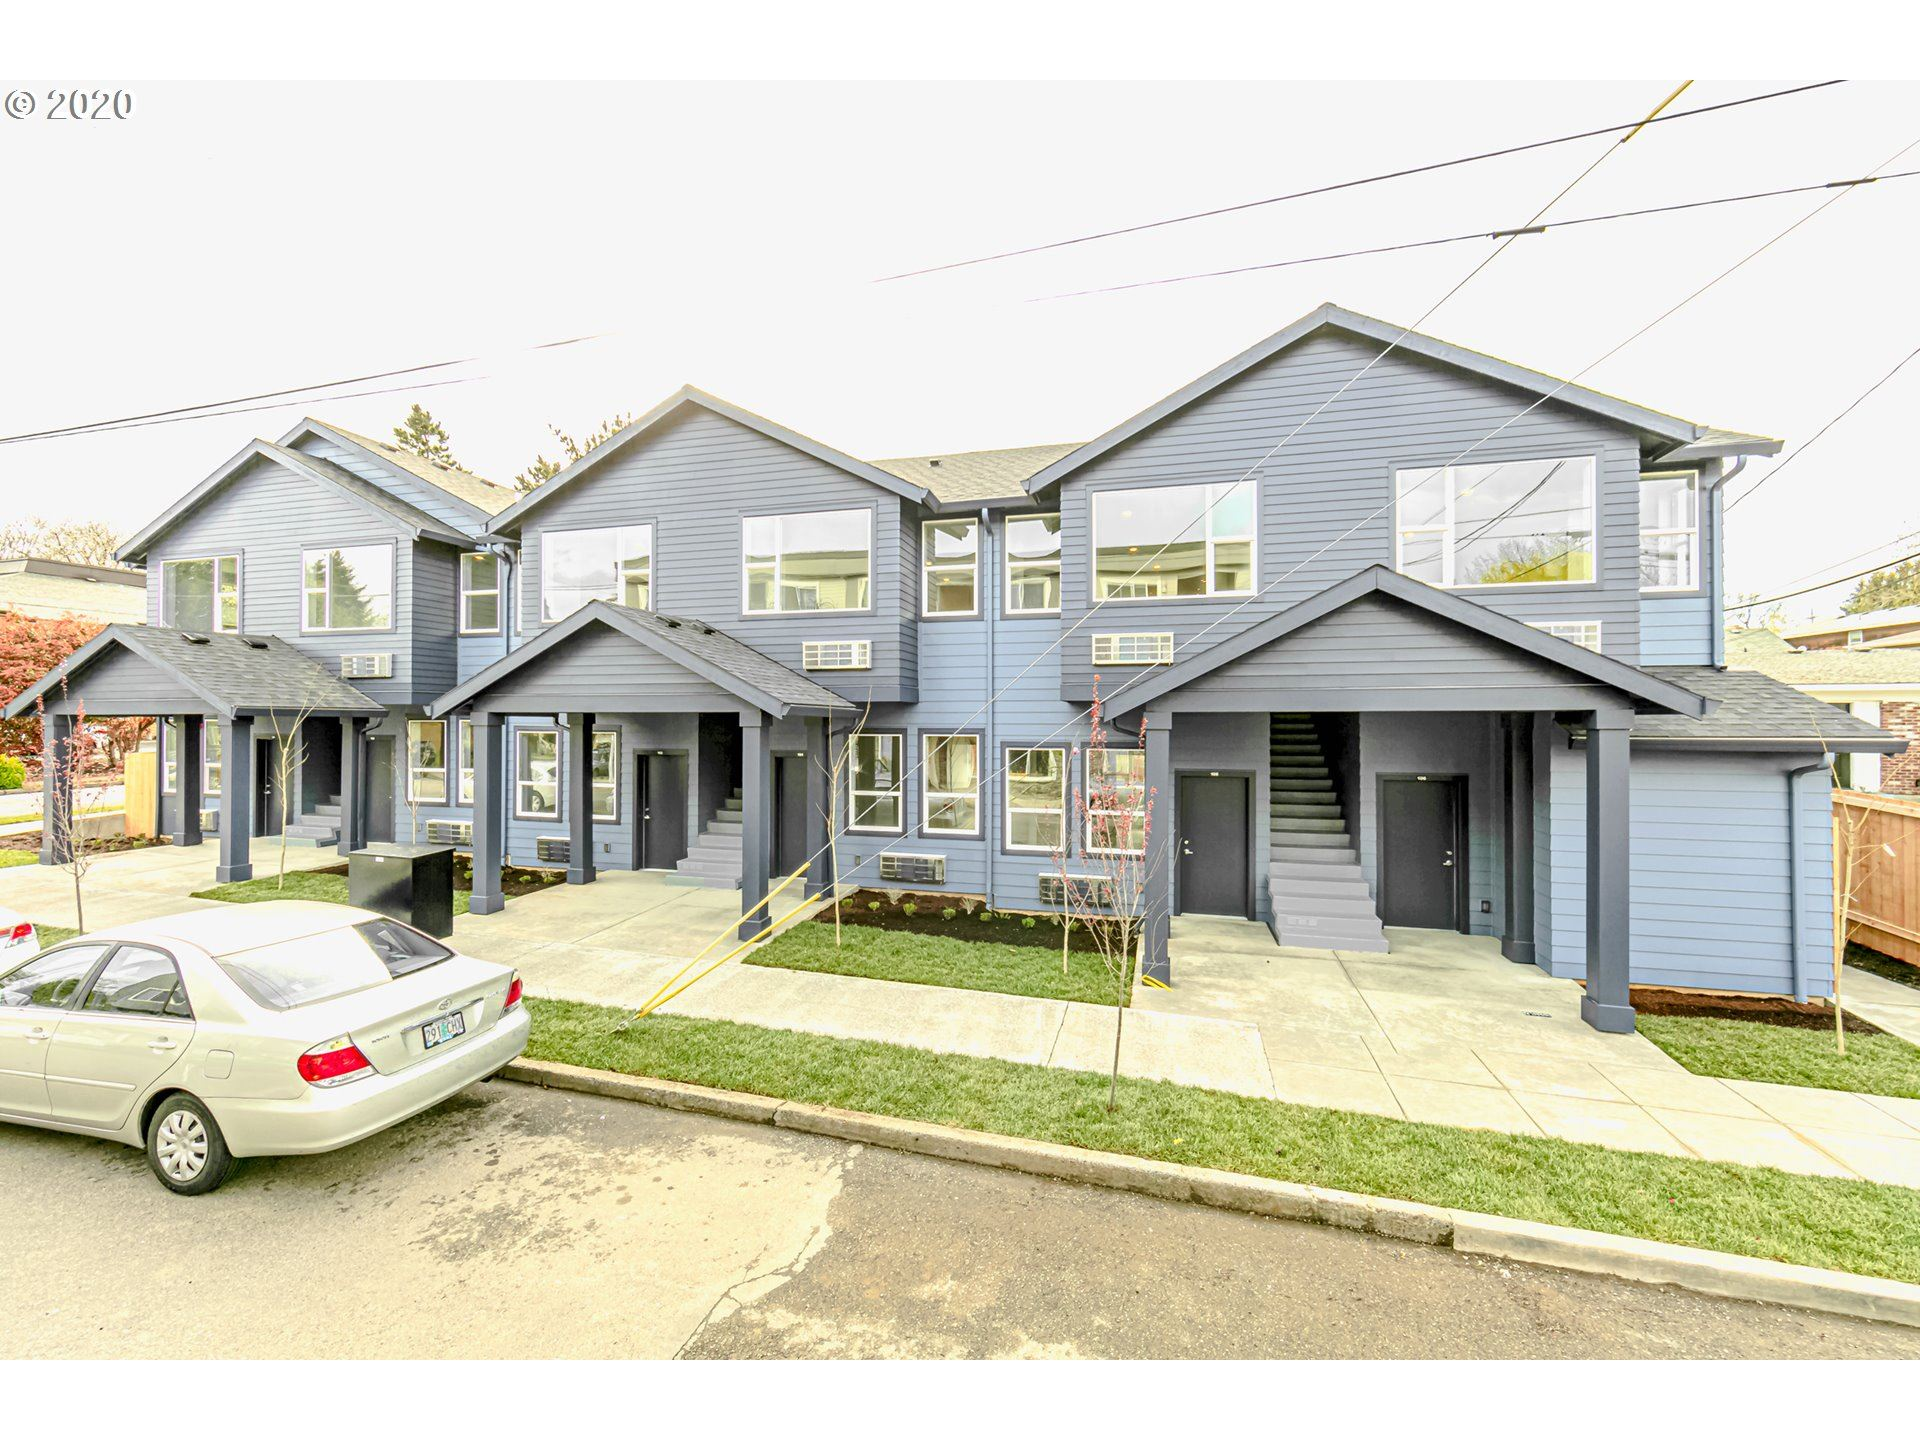 5377 SE 18TH AVE, Portland, OR 97202 - MLS#: 20233848